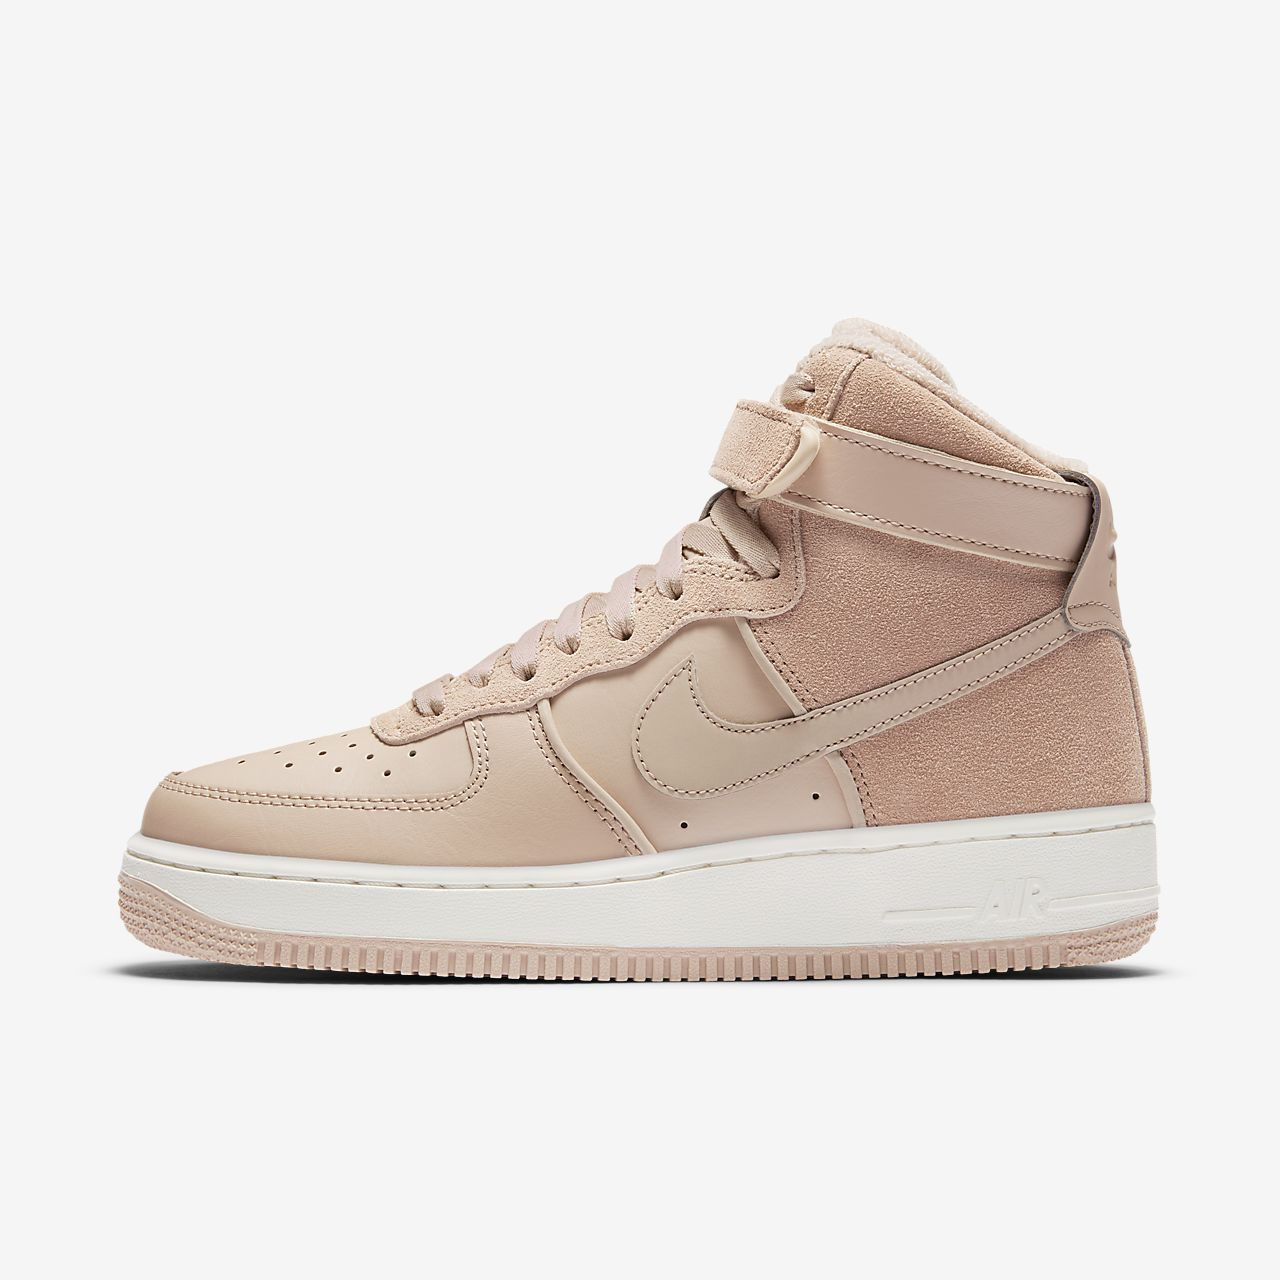 Nike Air Force 1 High Winterized Damesschoen